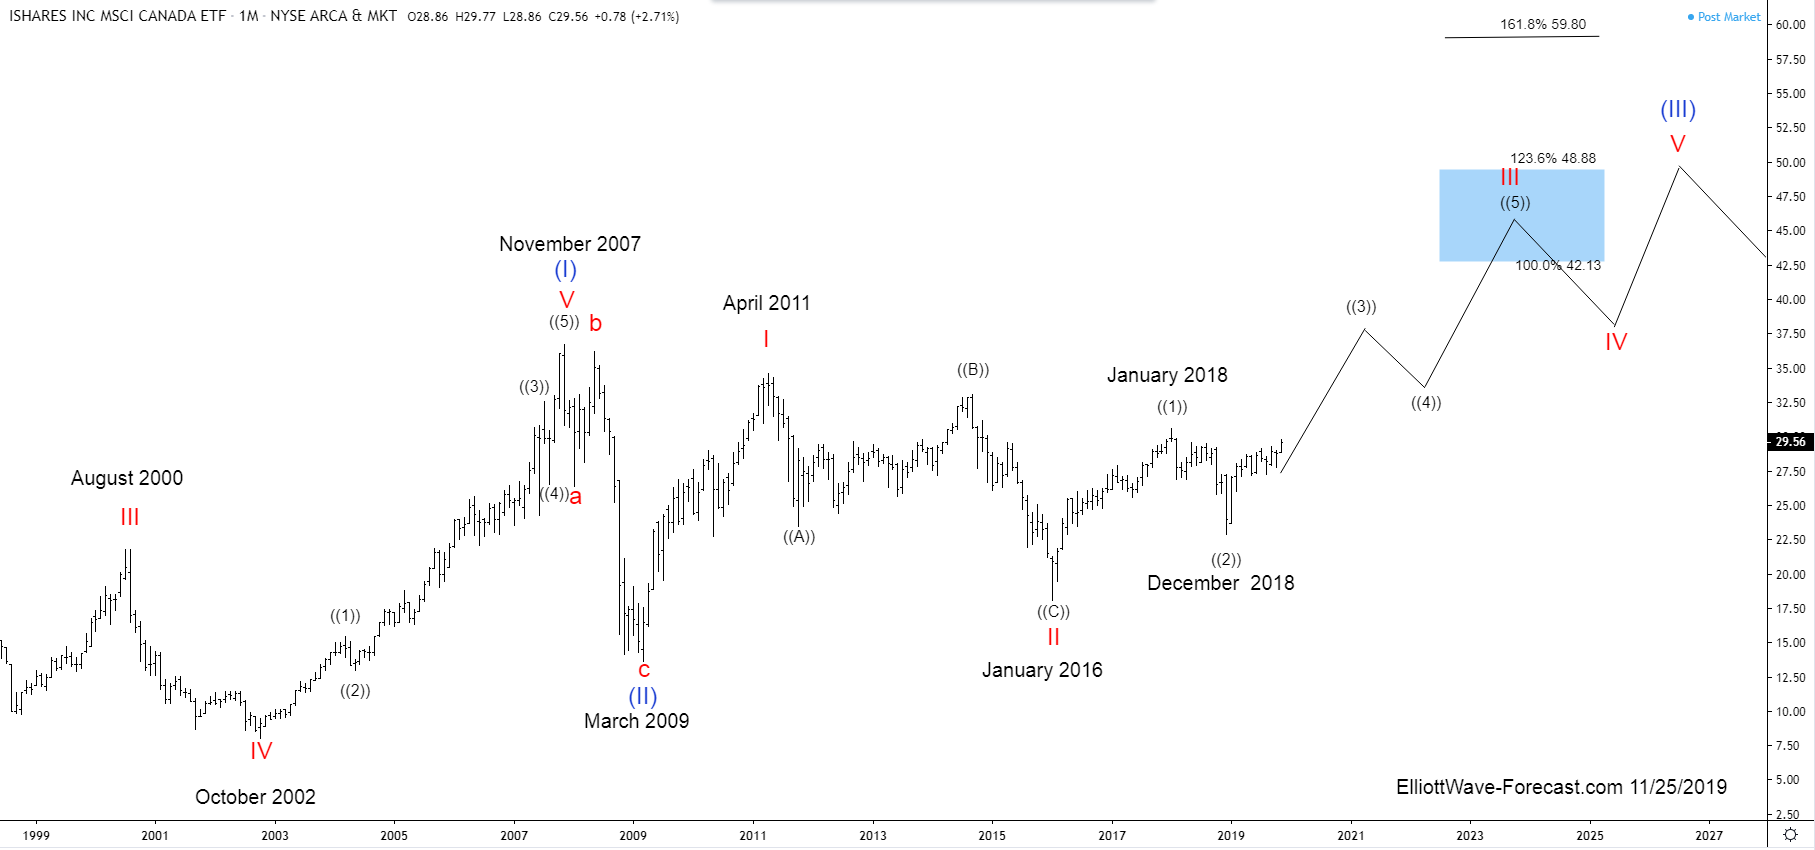 $EWC iShares MSCI Canada ETF Long Term Cycles & Elliott Wave